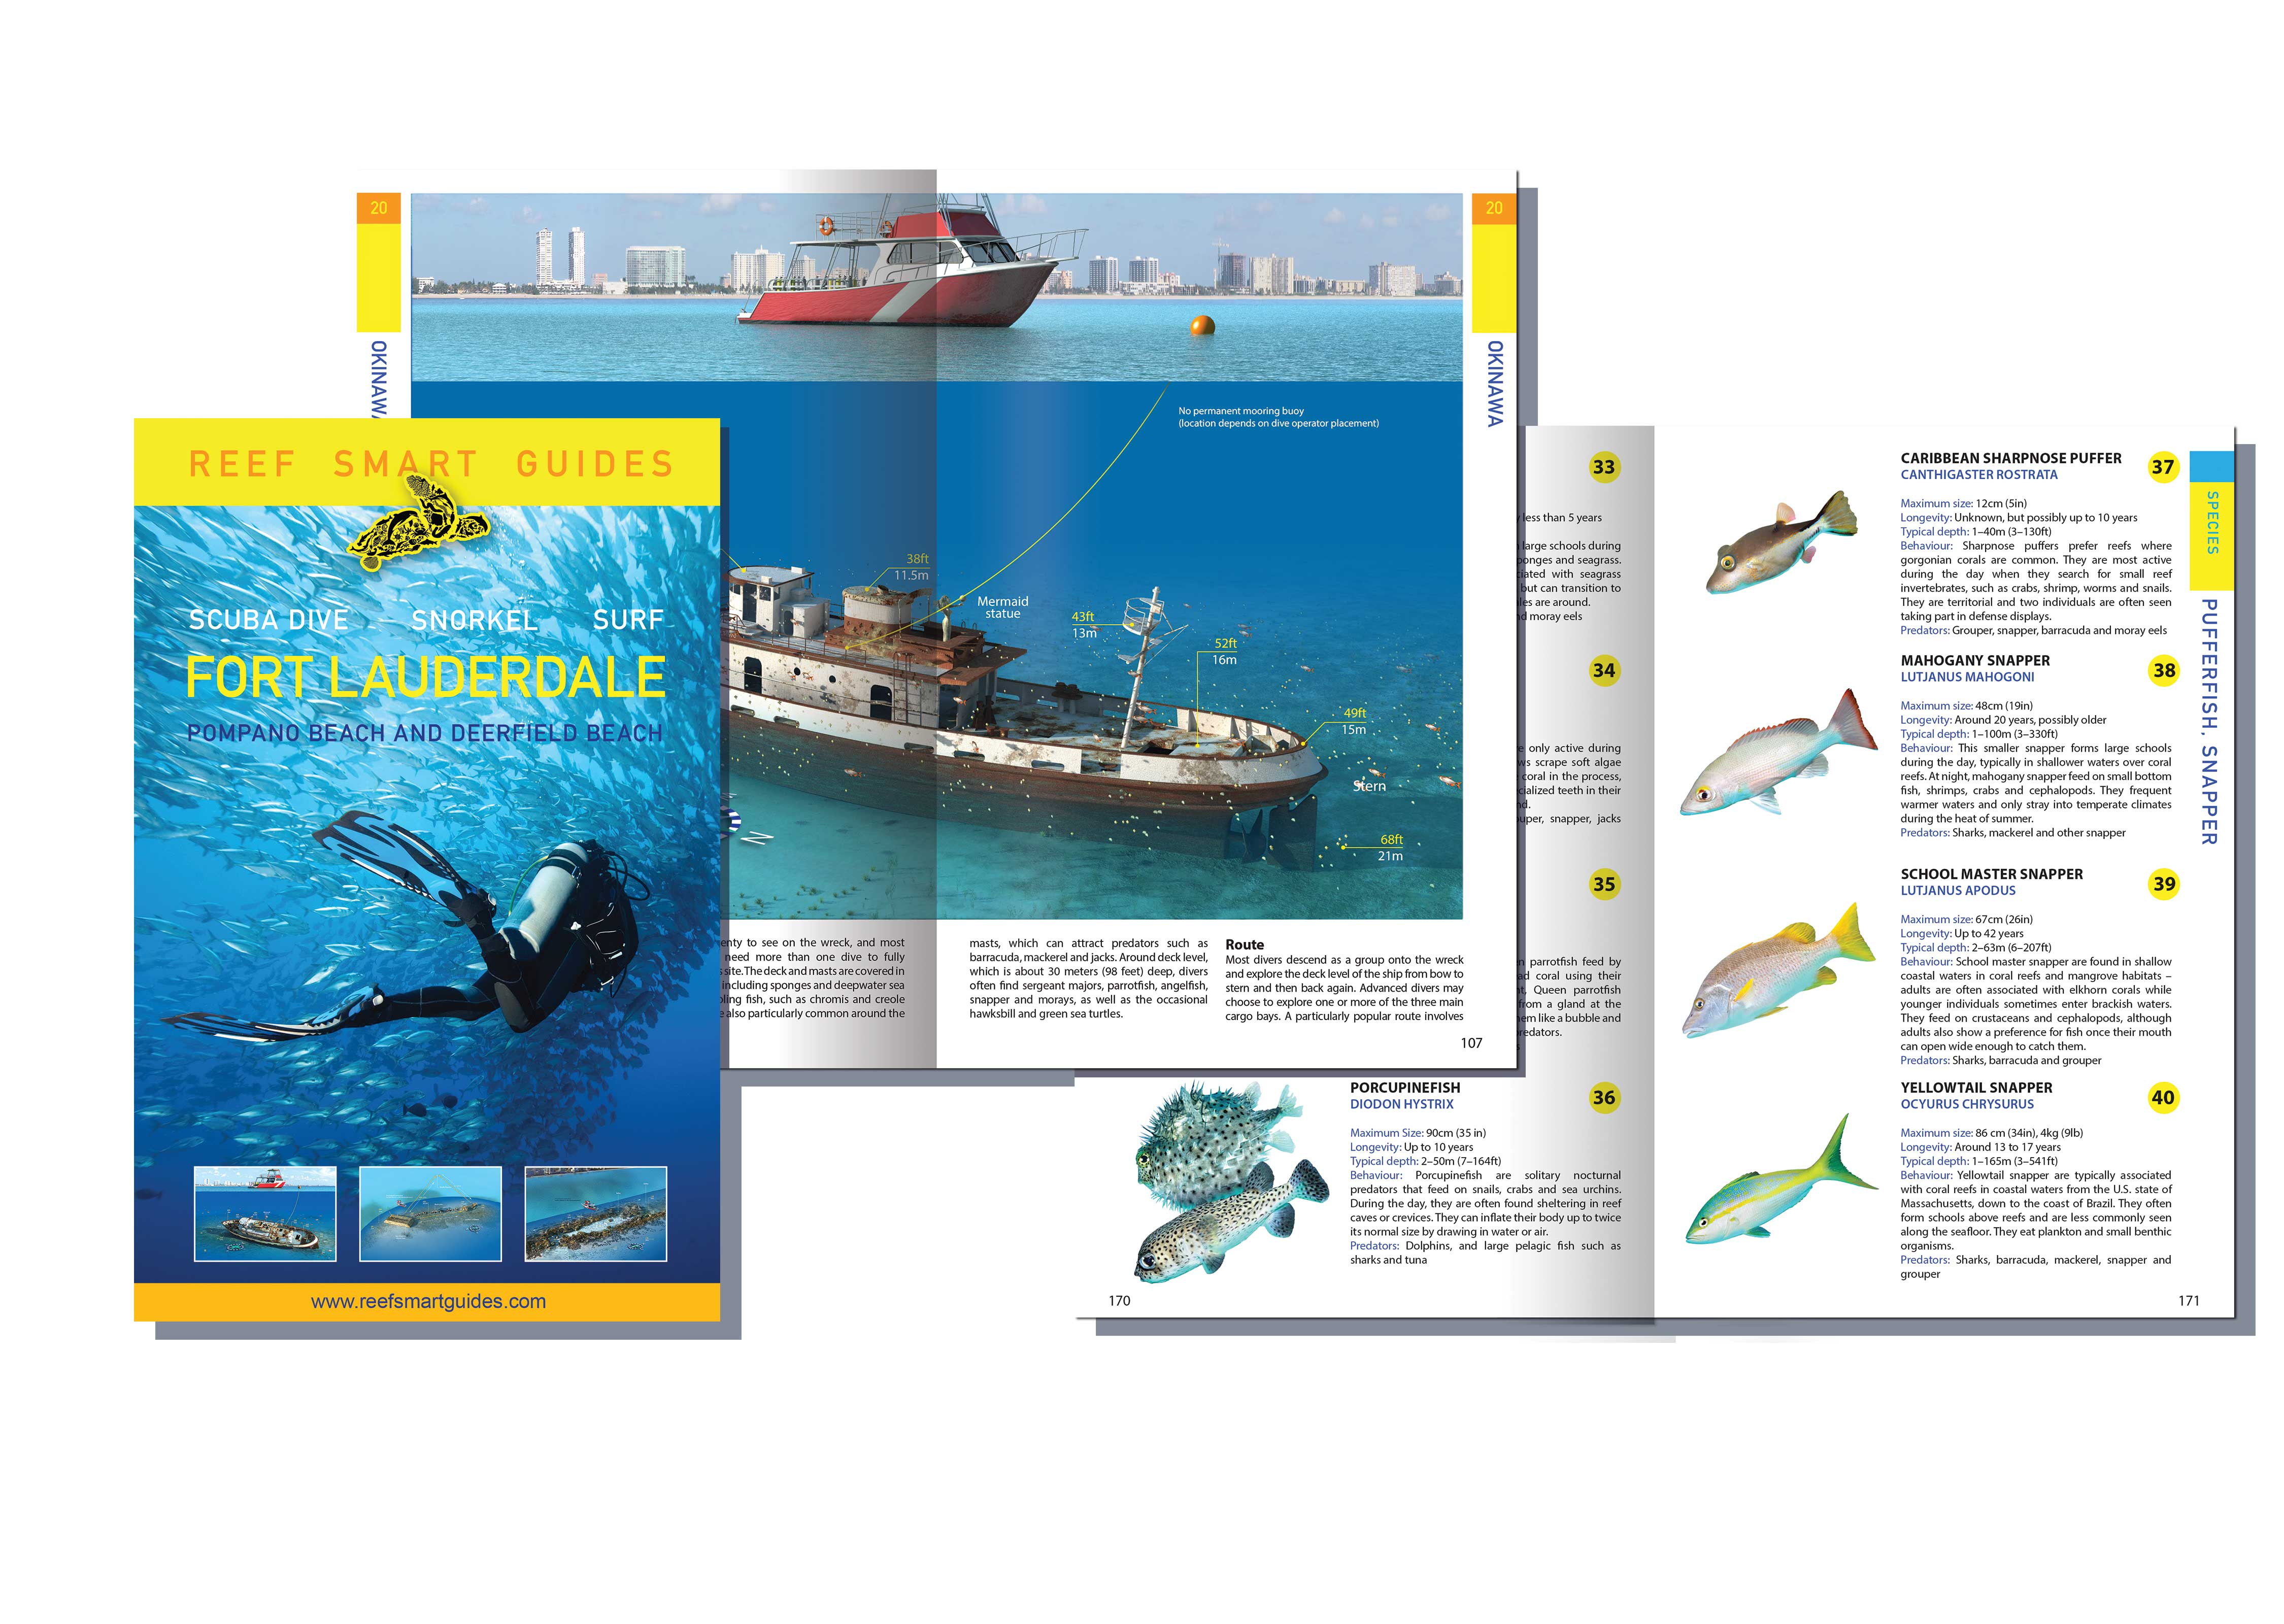 Fort Lauderdale dive, snorkel and surf guidebook now available for pre-order